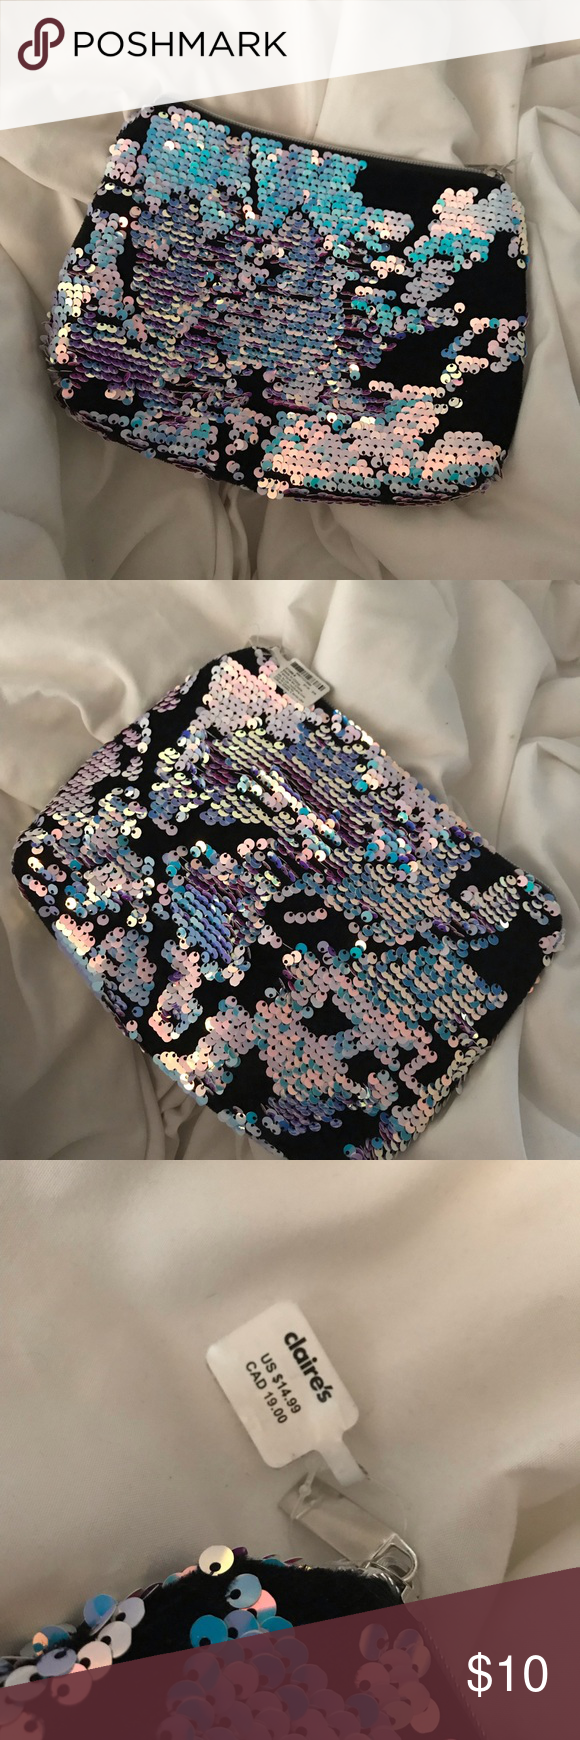 Claire's Makeup Bag Holographic sequins with black base